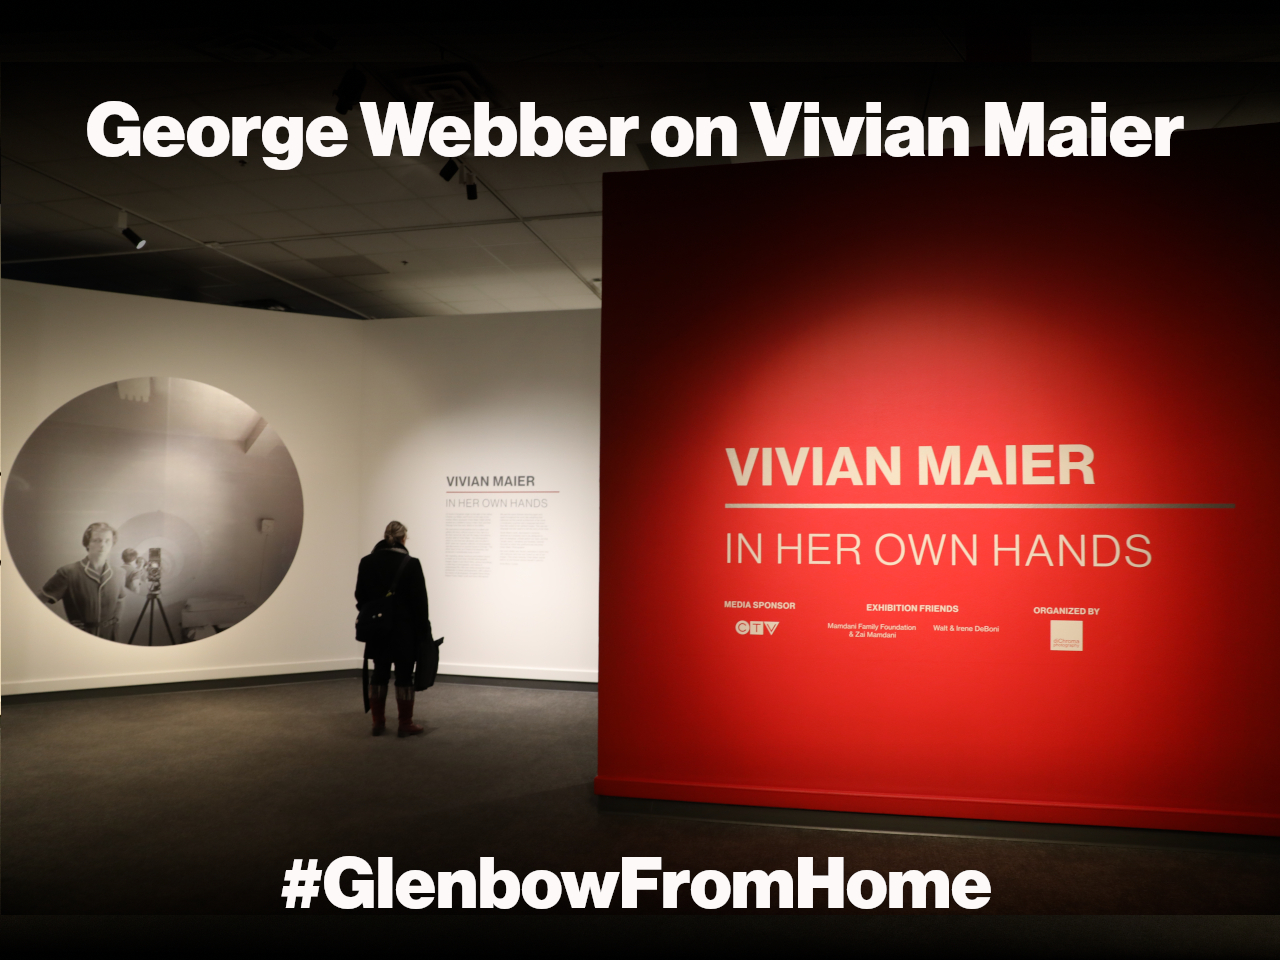 The entrance to the Vivian Maier exhibition at Glenbow